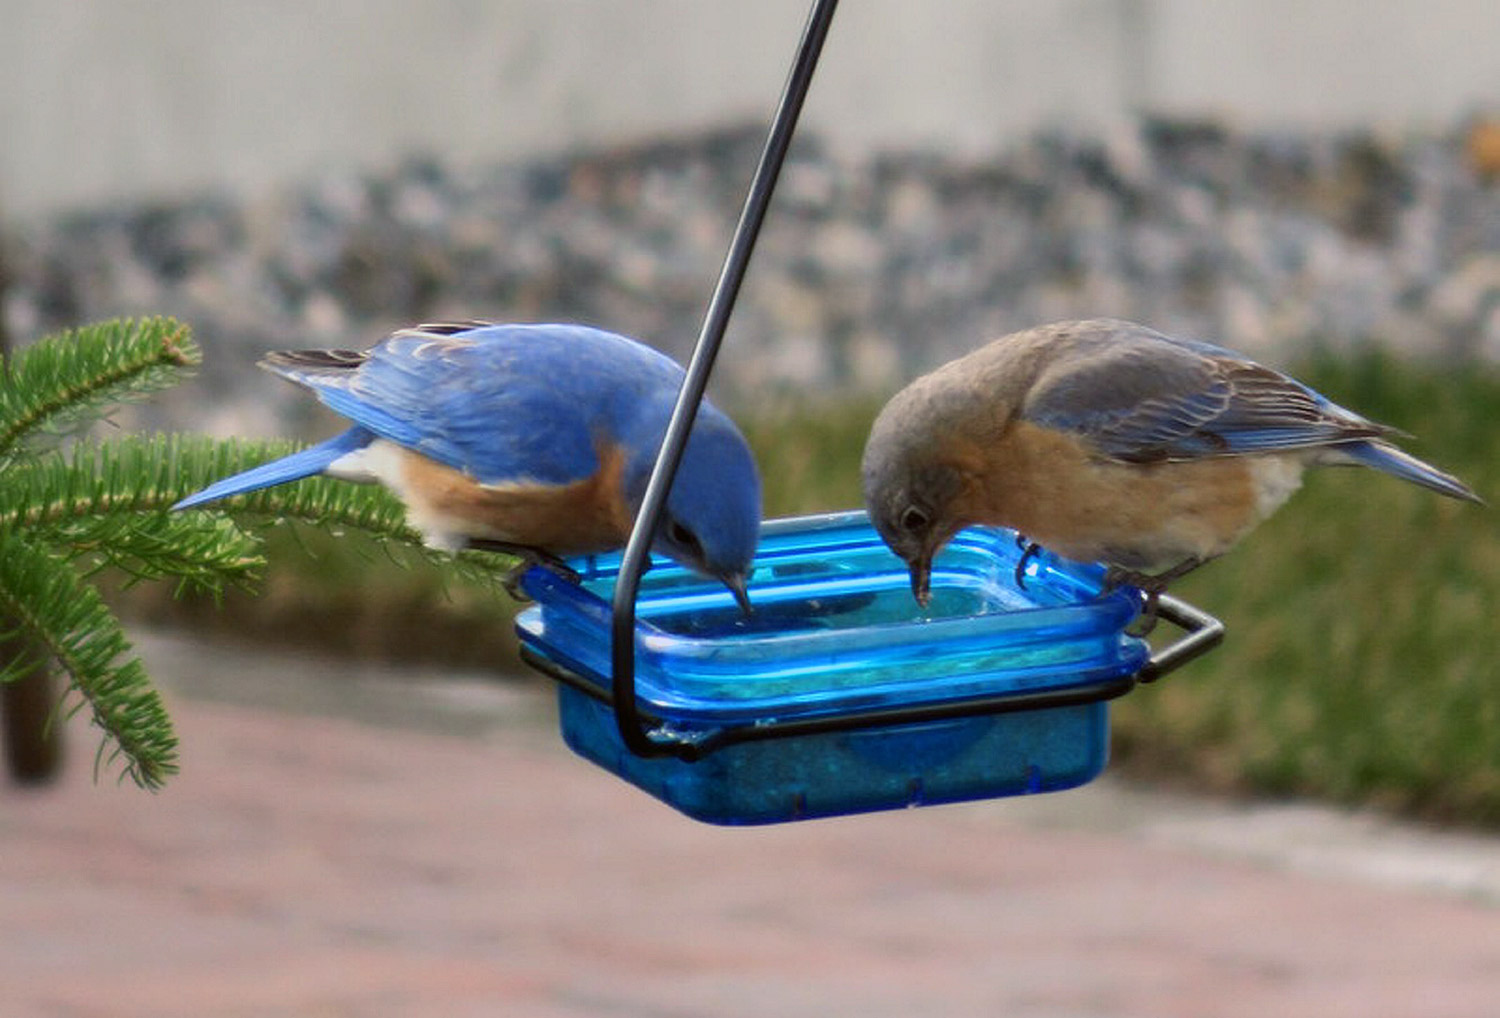 A pair of bluebirds visit the feeder at the home of Jo Anne and John Gouveia in Wells.